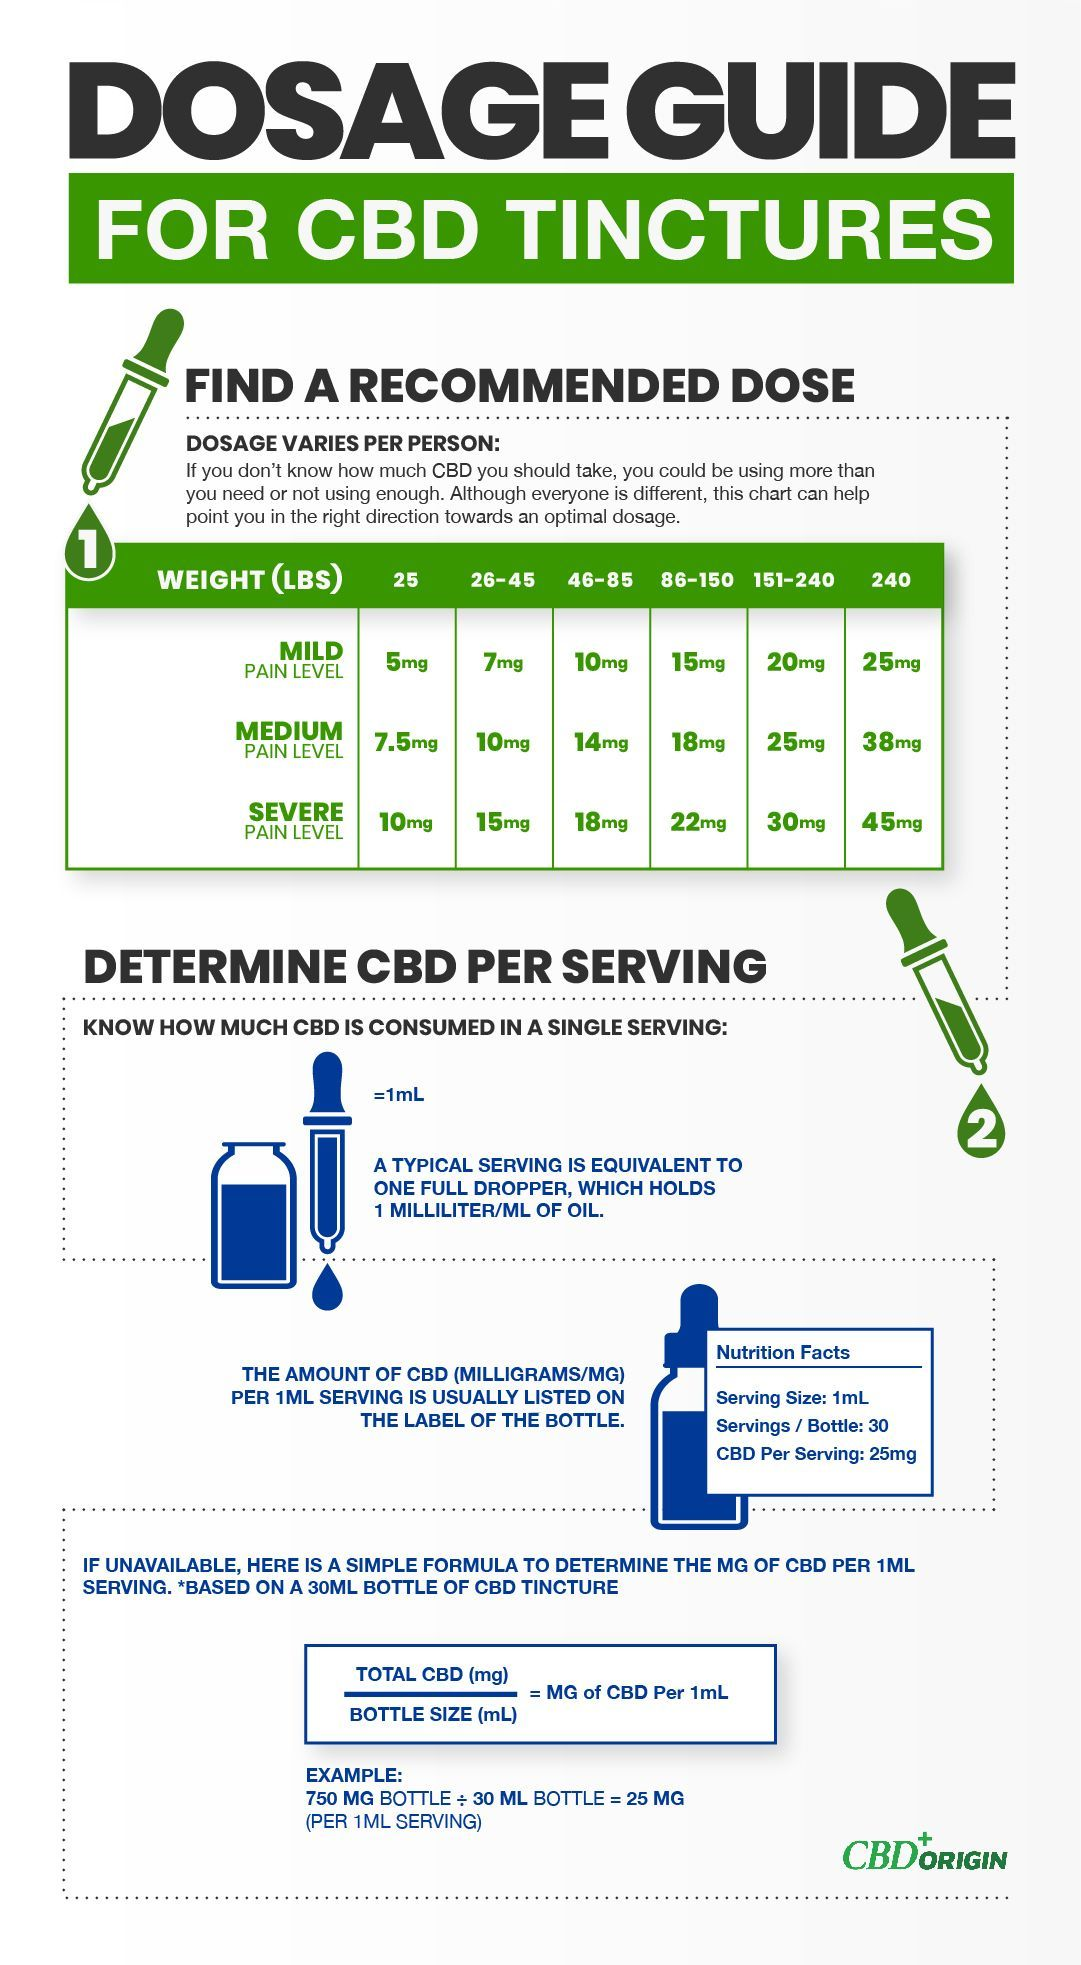 Wondering How Much CBD You Should Take? Try Our CBD Dosage Calculator!